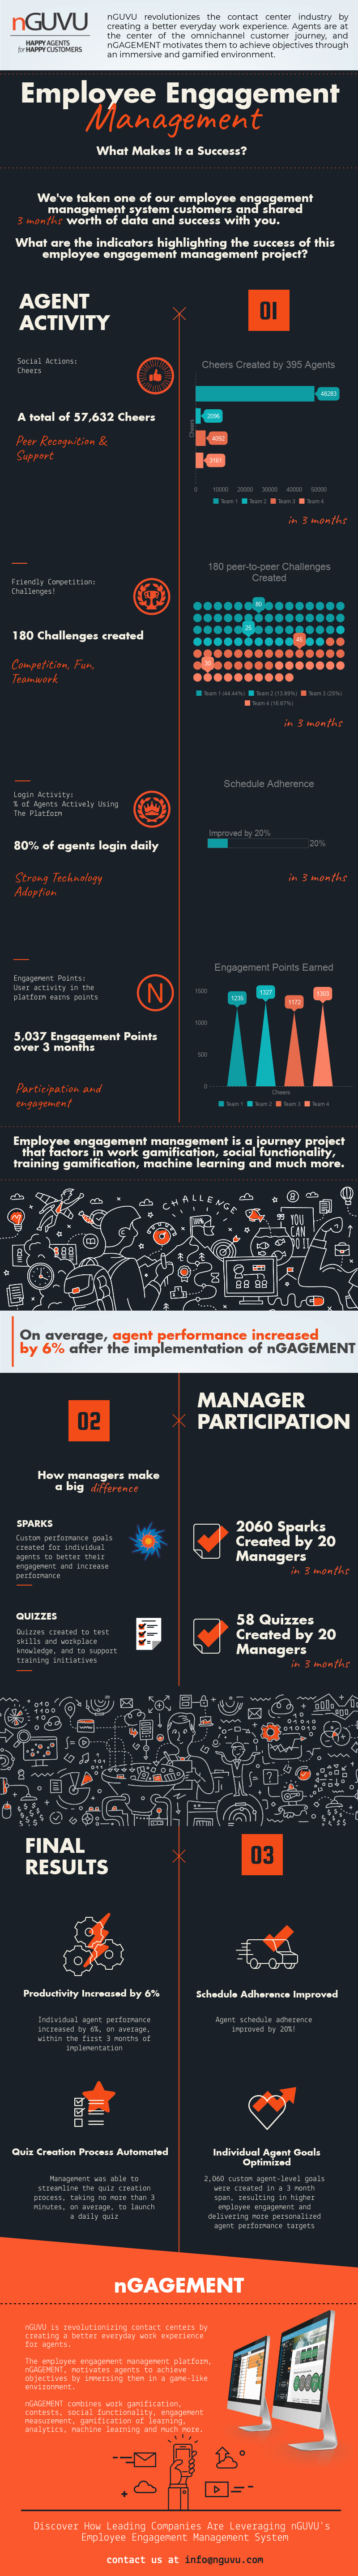 Employee Engagement Management Project Success - Infographic.png